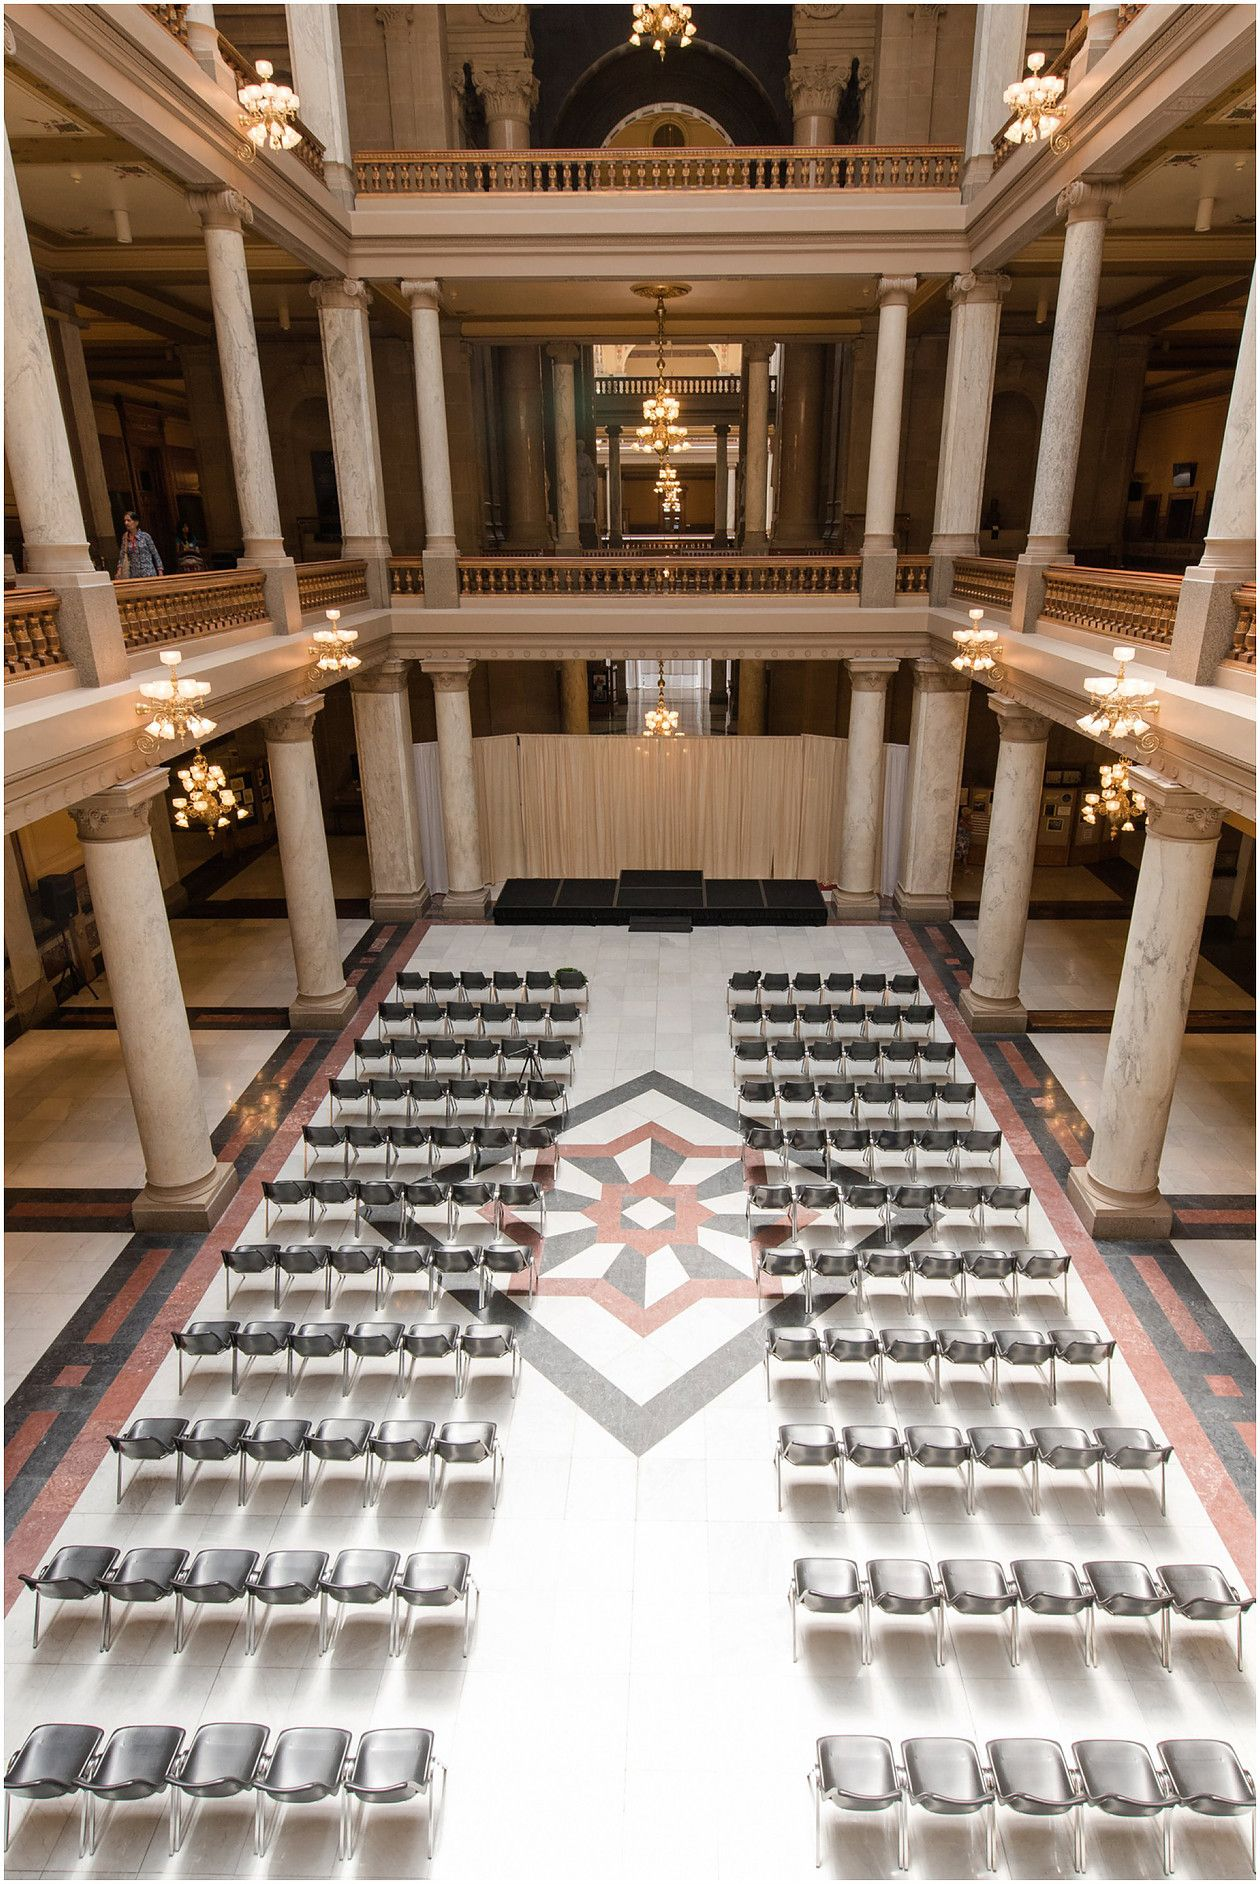 Indiana state house weddings indianapolis wedding venue indiana state house weddings indianapolis wedding venue indianapolisweddingvenue junglespirit Image collections